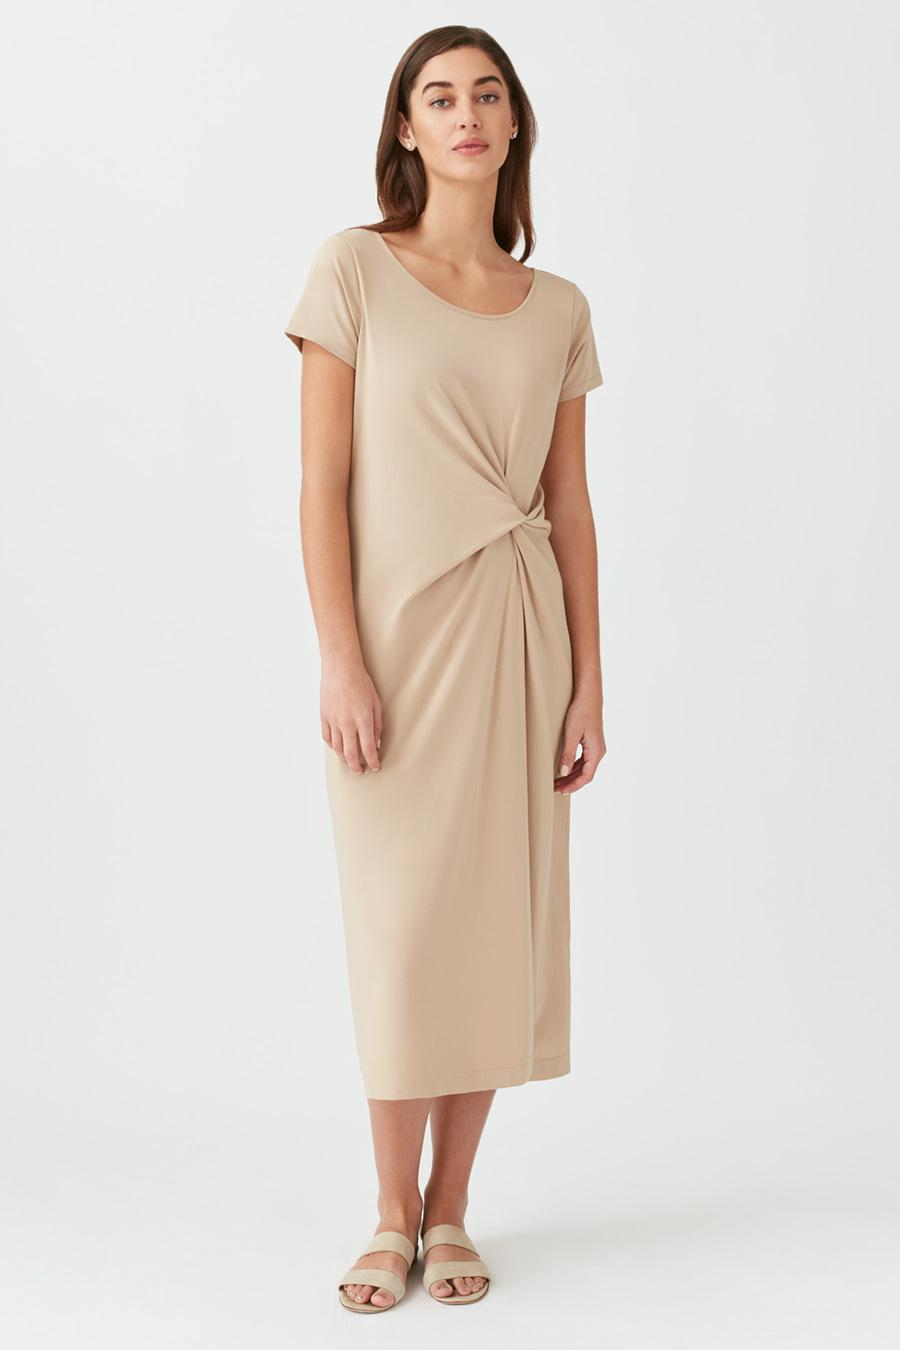 Women's Gathered Front Tee Dress in Dune | Size: Small | Pima Modal Spandex Blend by Cuyana 1